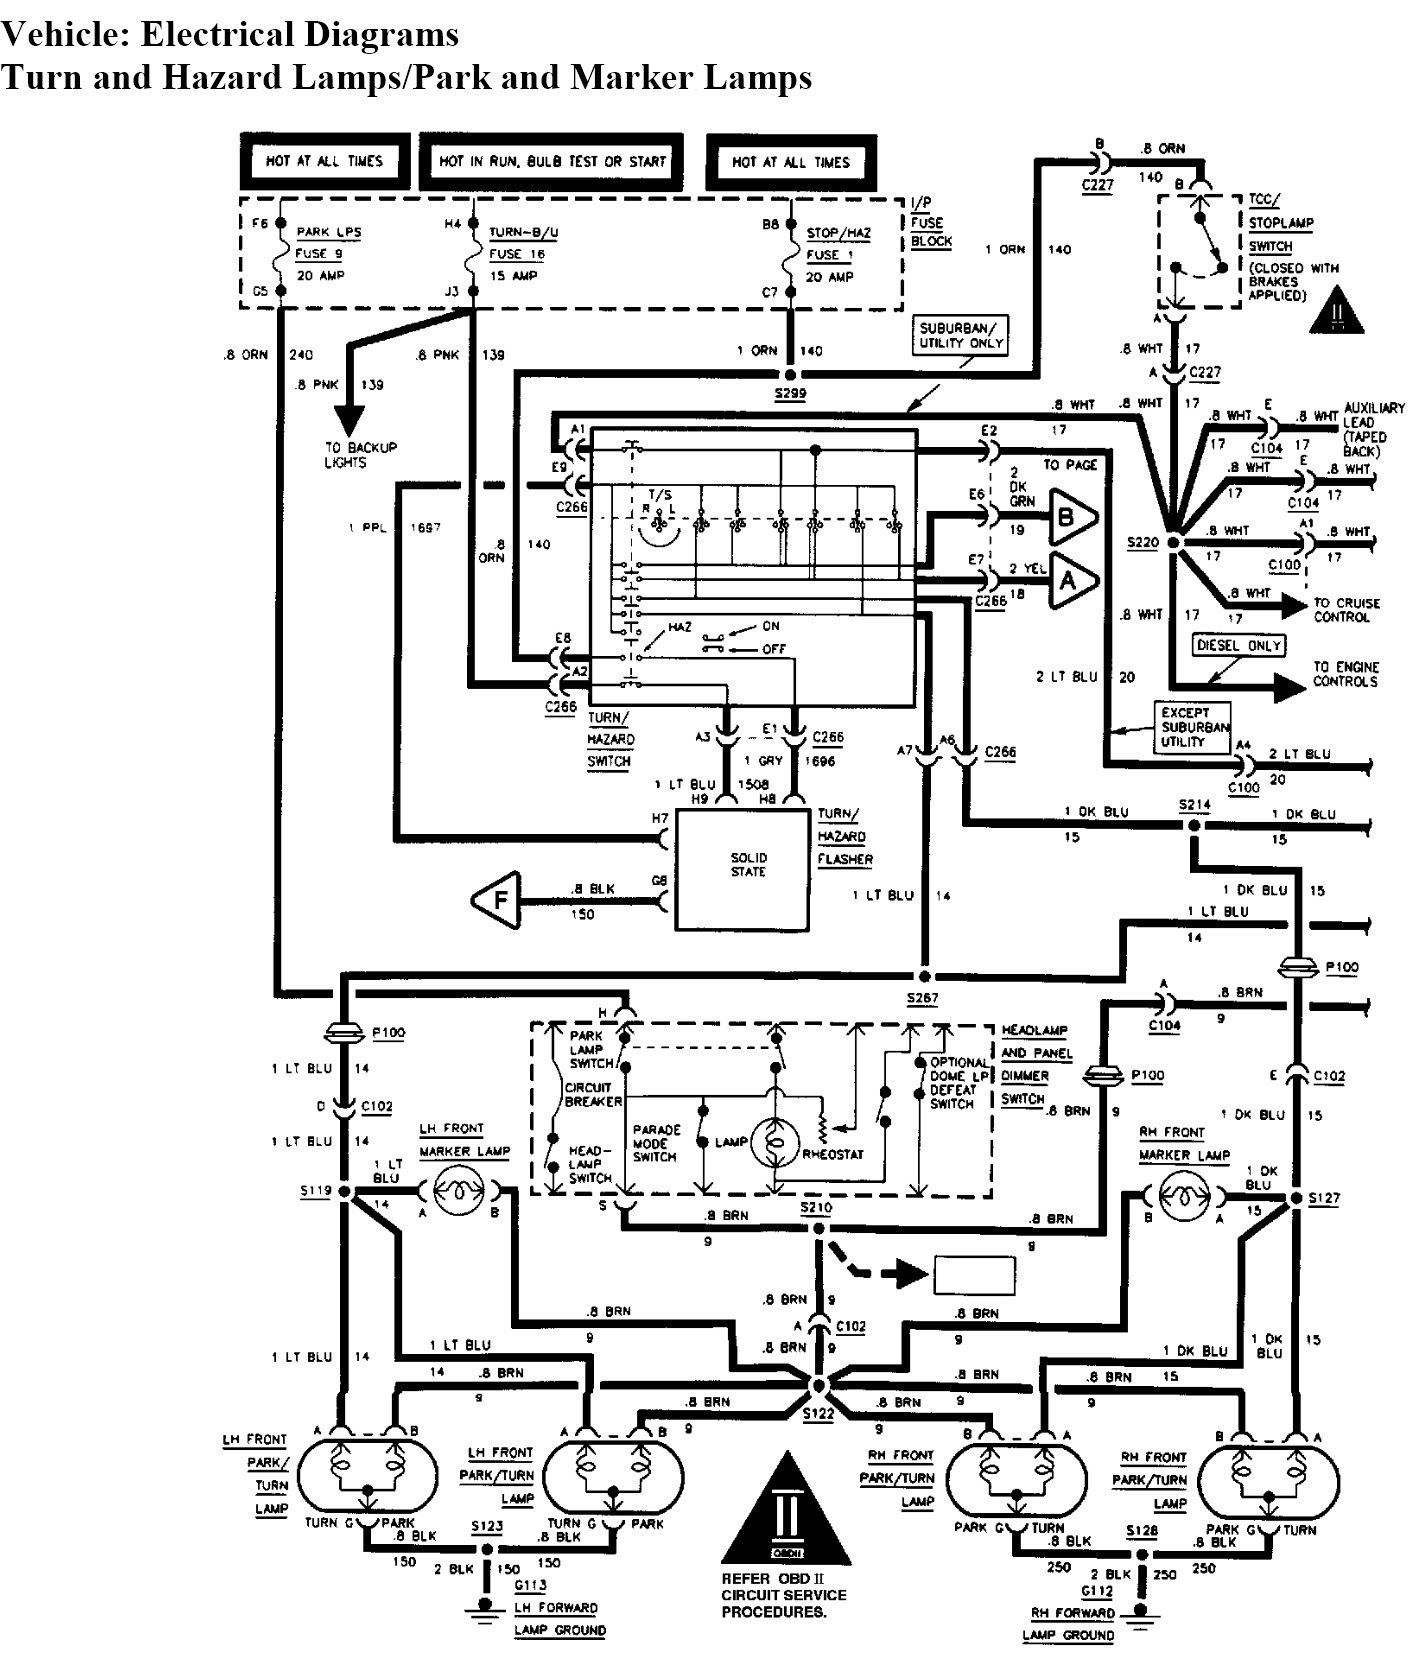 2004 Chevy Silverado Tail Light Wiring Diagram Wiring Diagram Series Series Lionsclubviterbo It